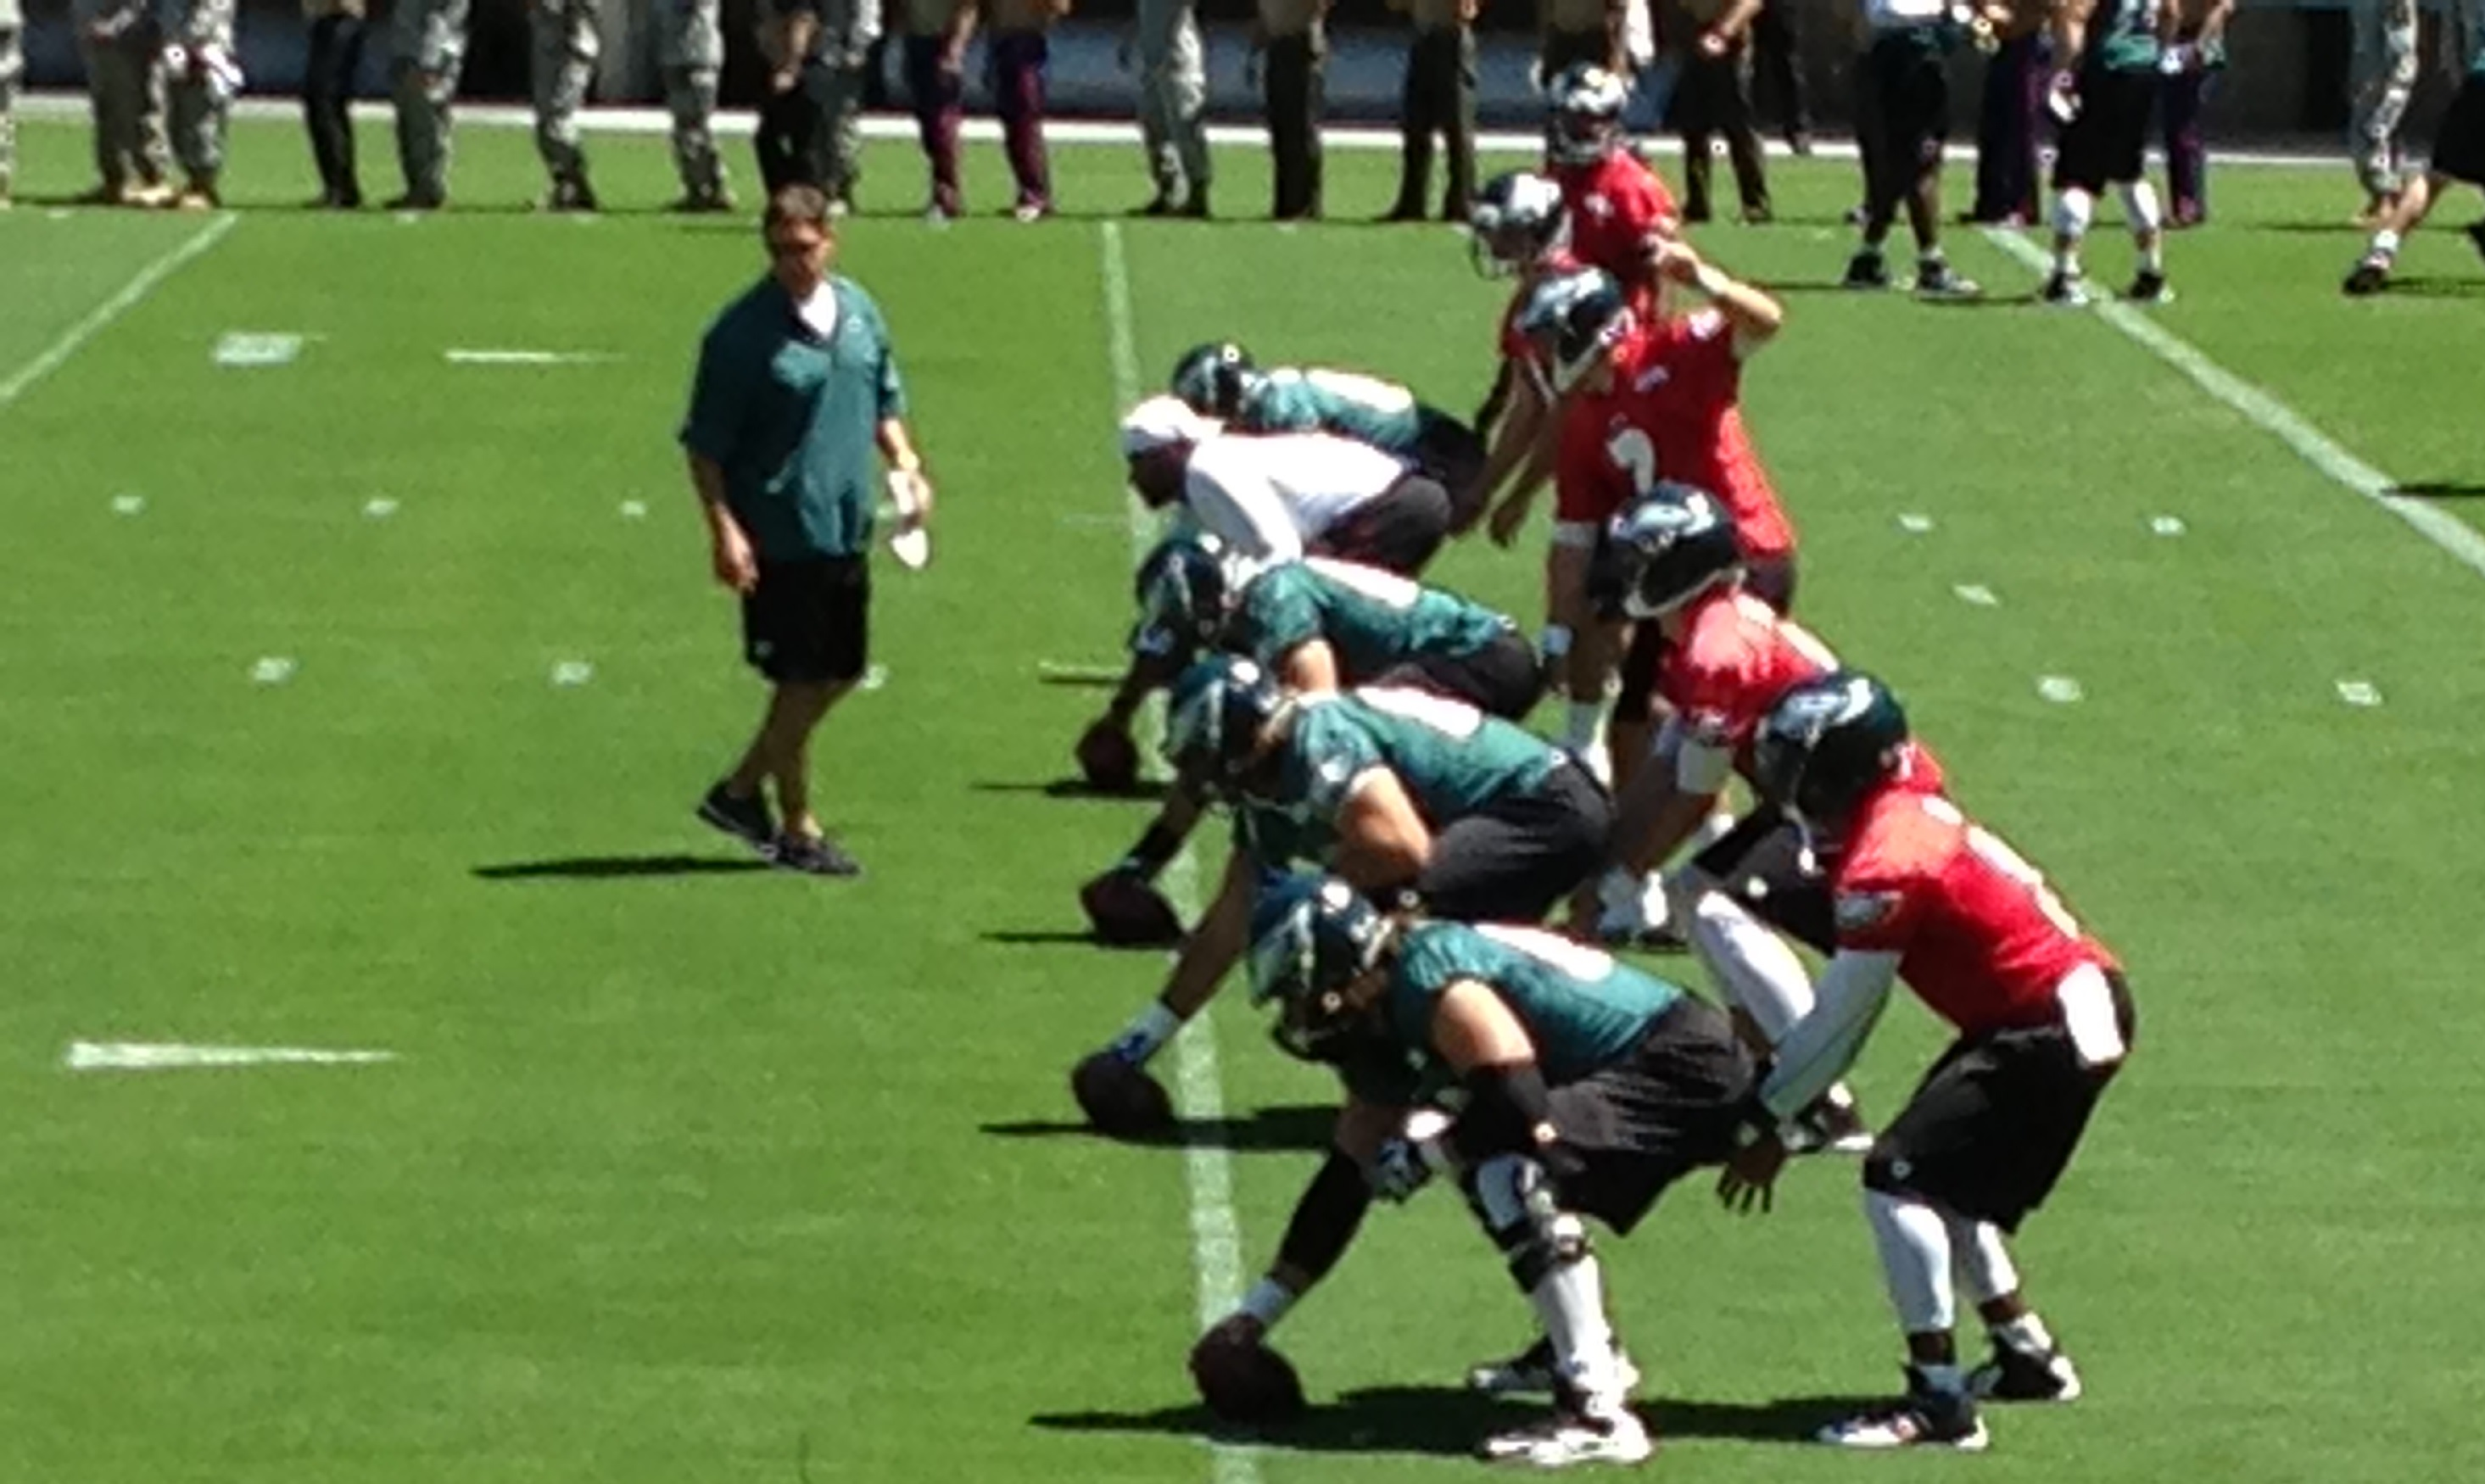 Eagles TC QB lineup